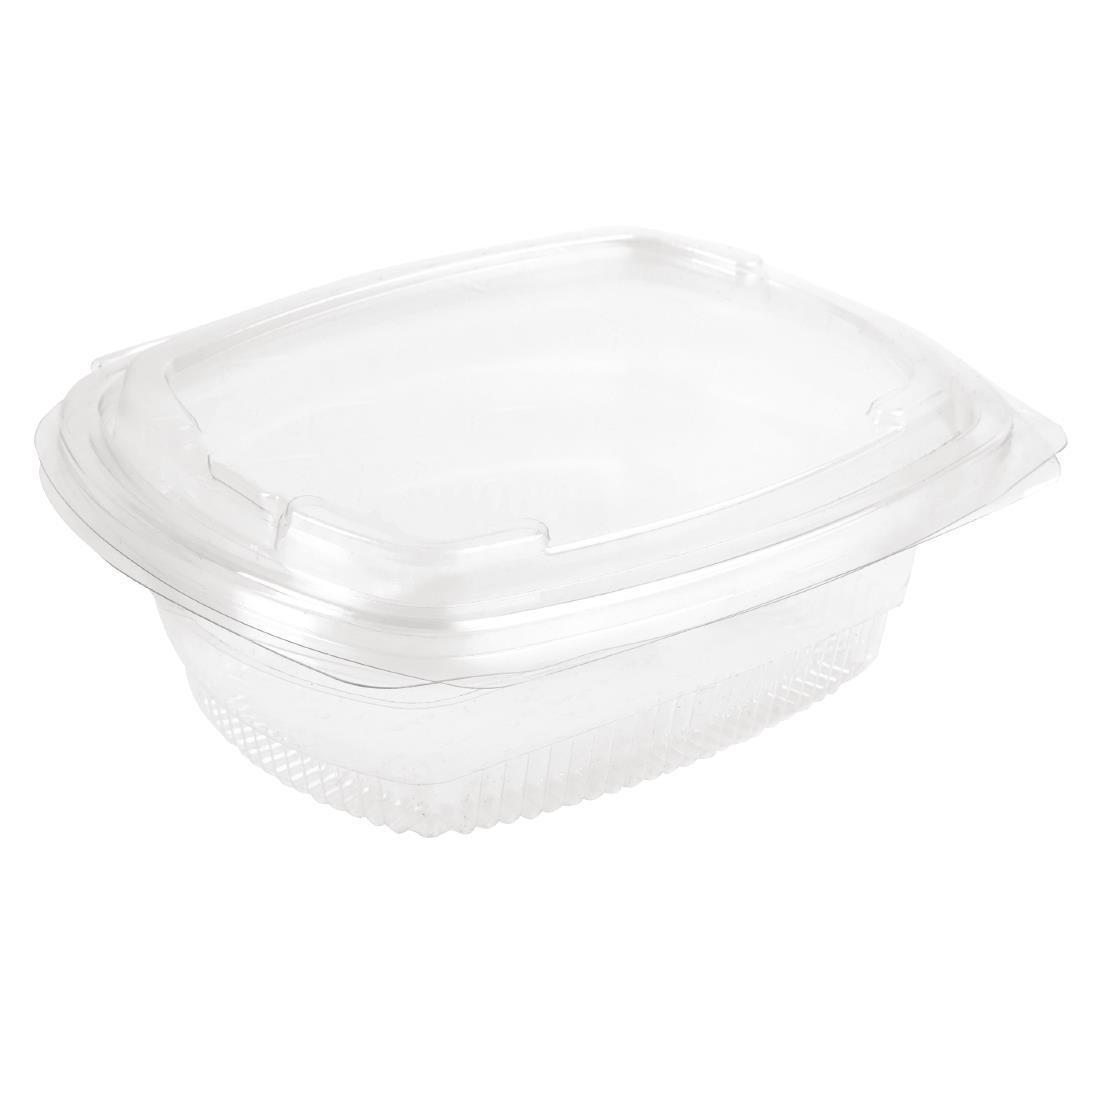 Faerch Fresco Recyclable Deli Containers With Lid 500ml / 17oz